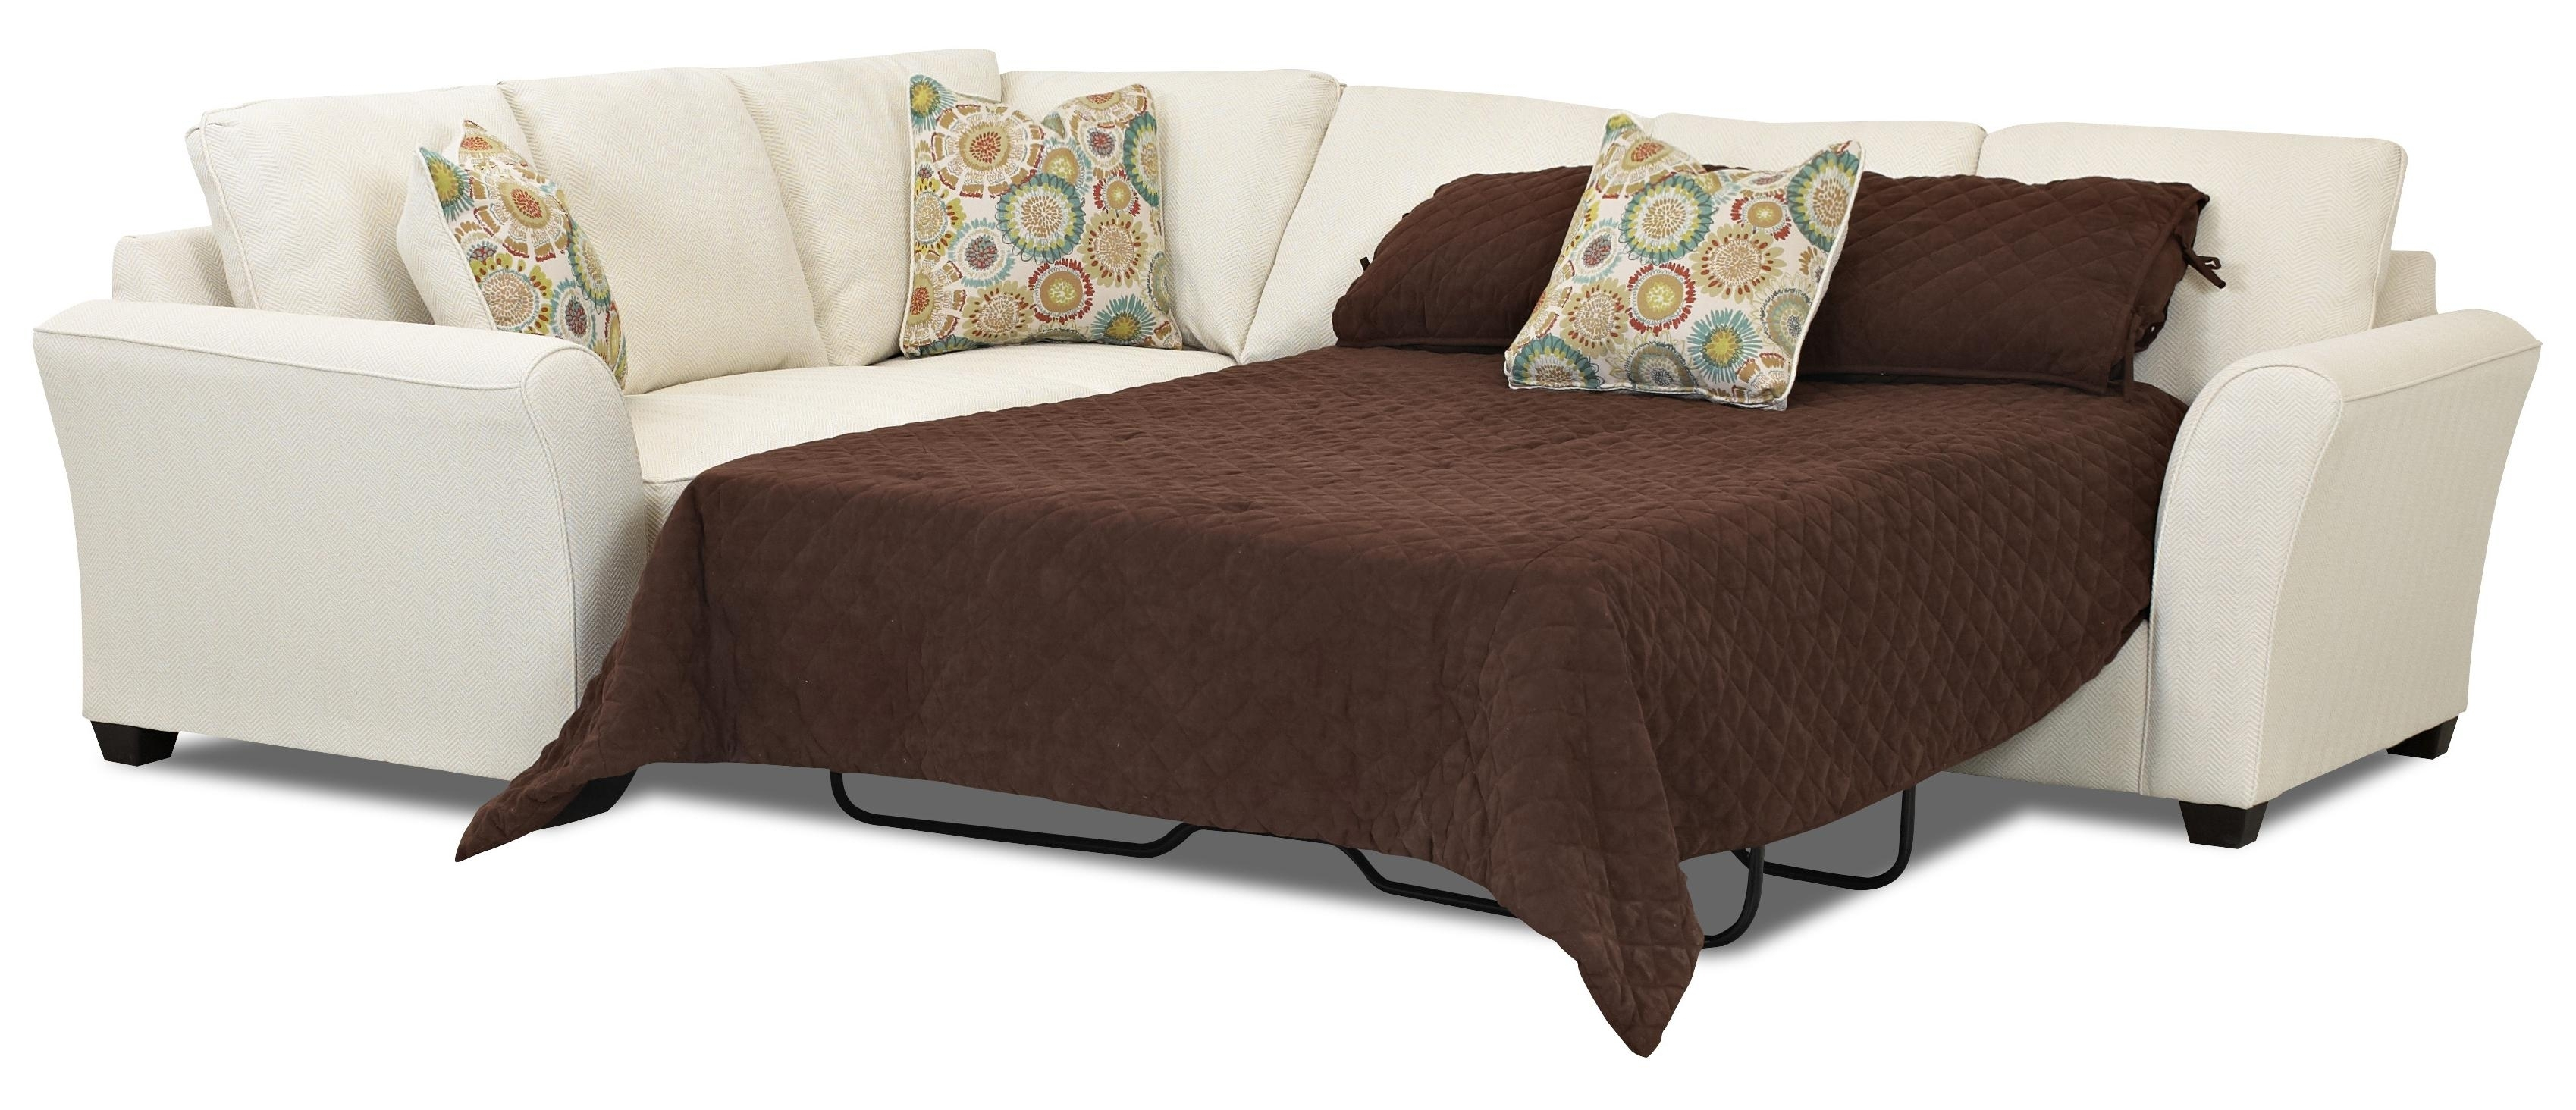 Popular Photo of Sectional Sofas With Queen Size Sleeper